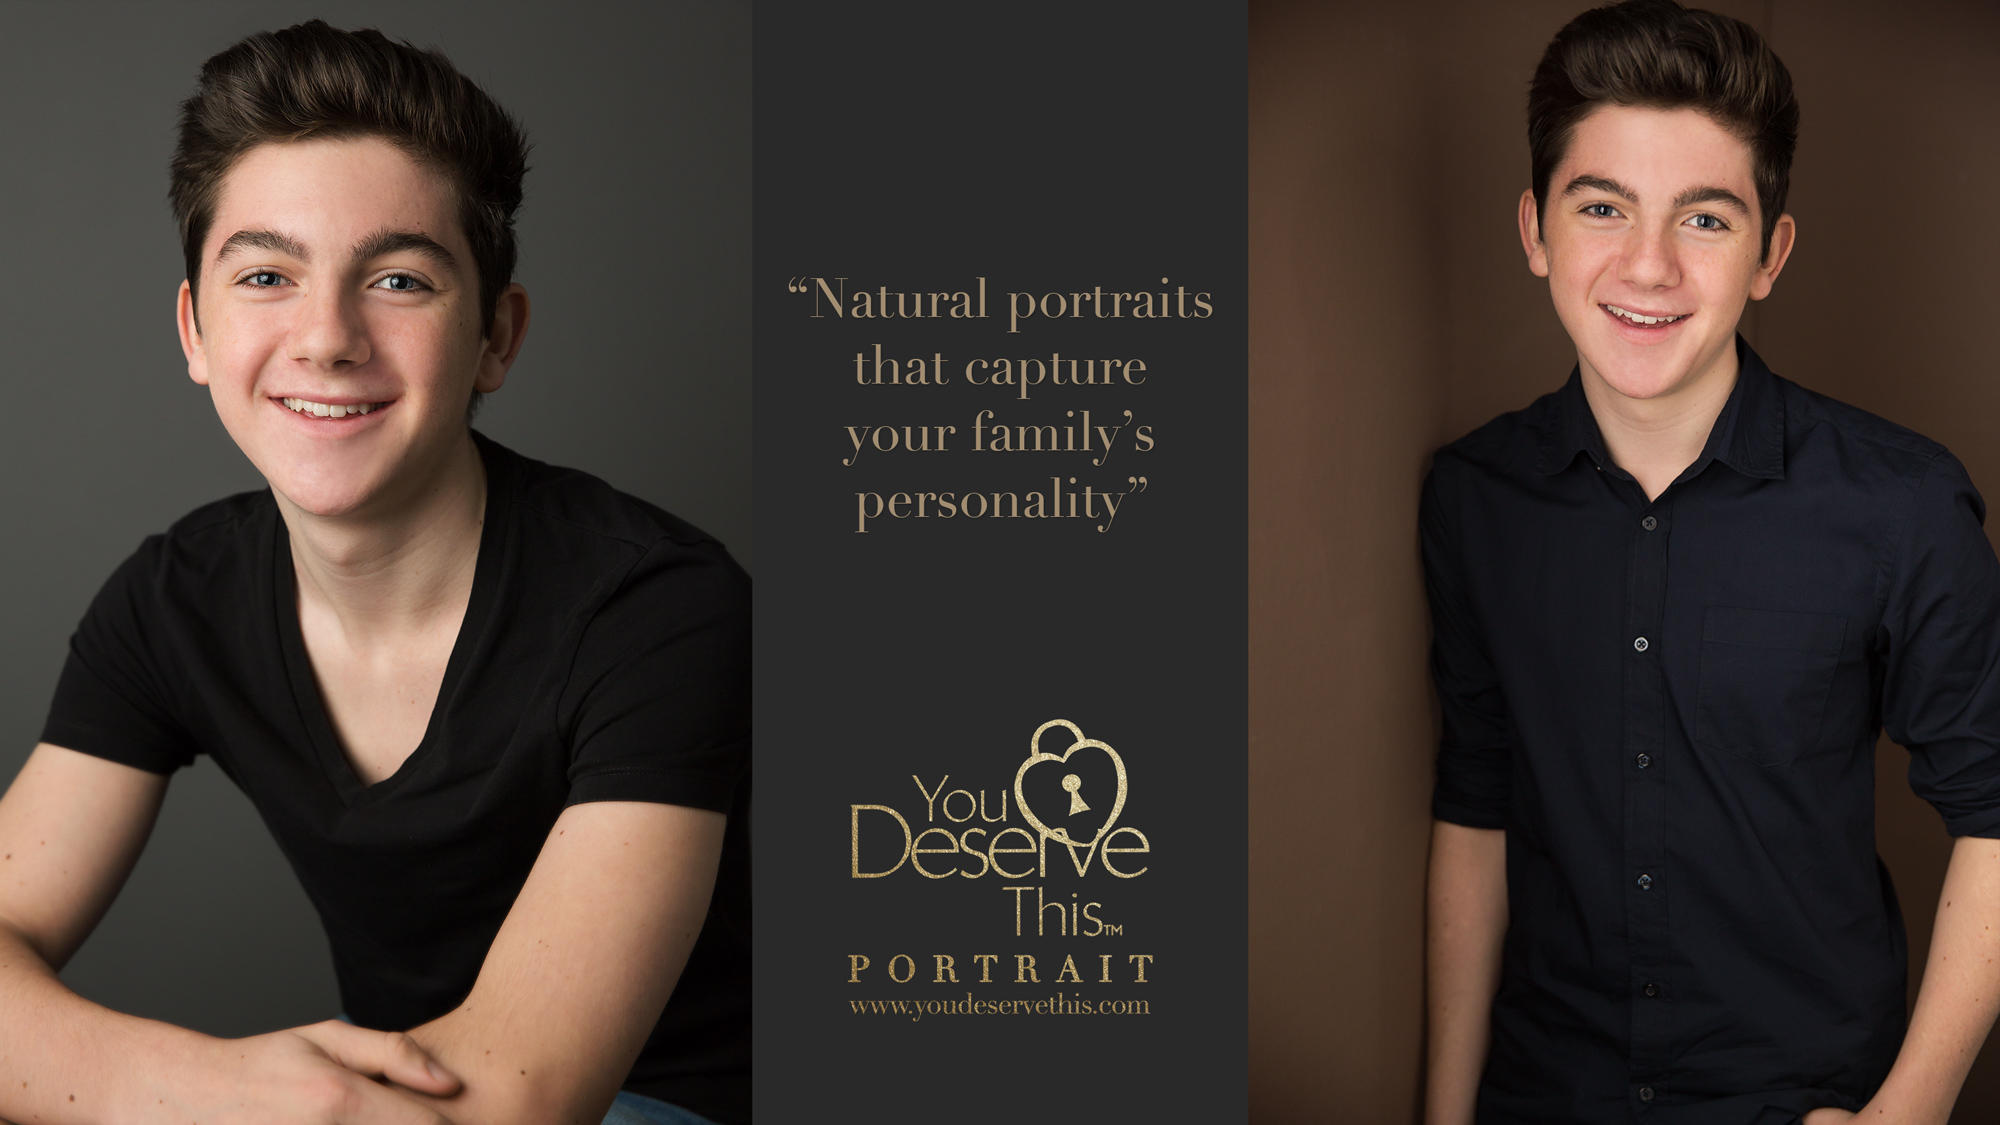 YouDeserveThis Portrait for Men